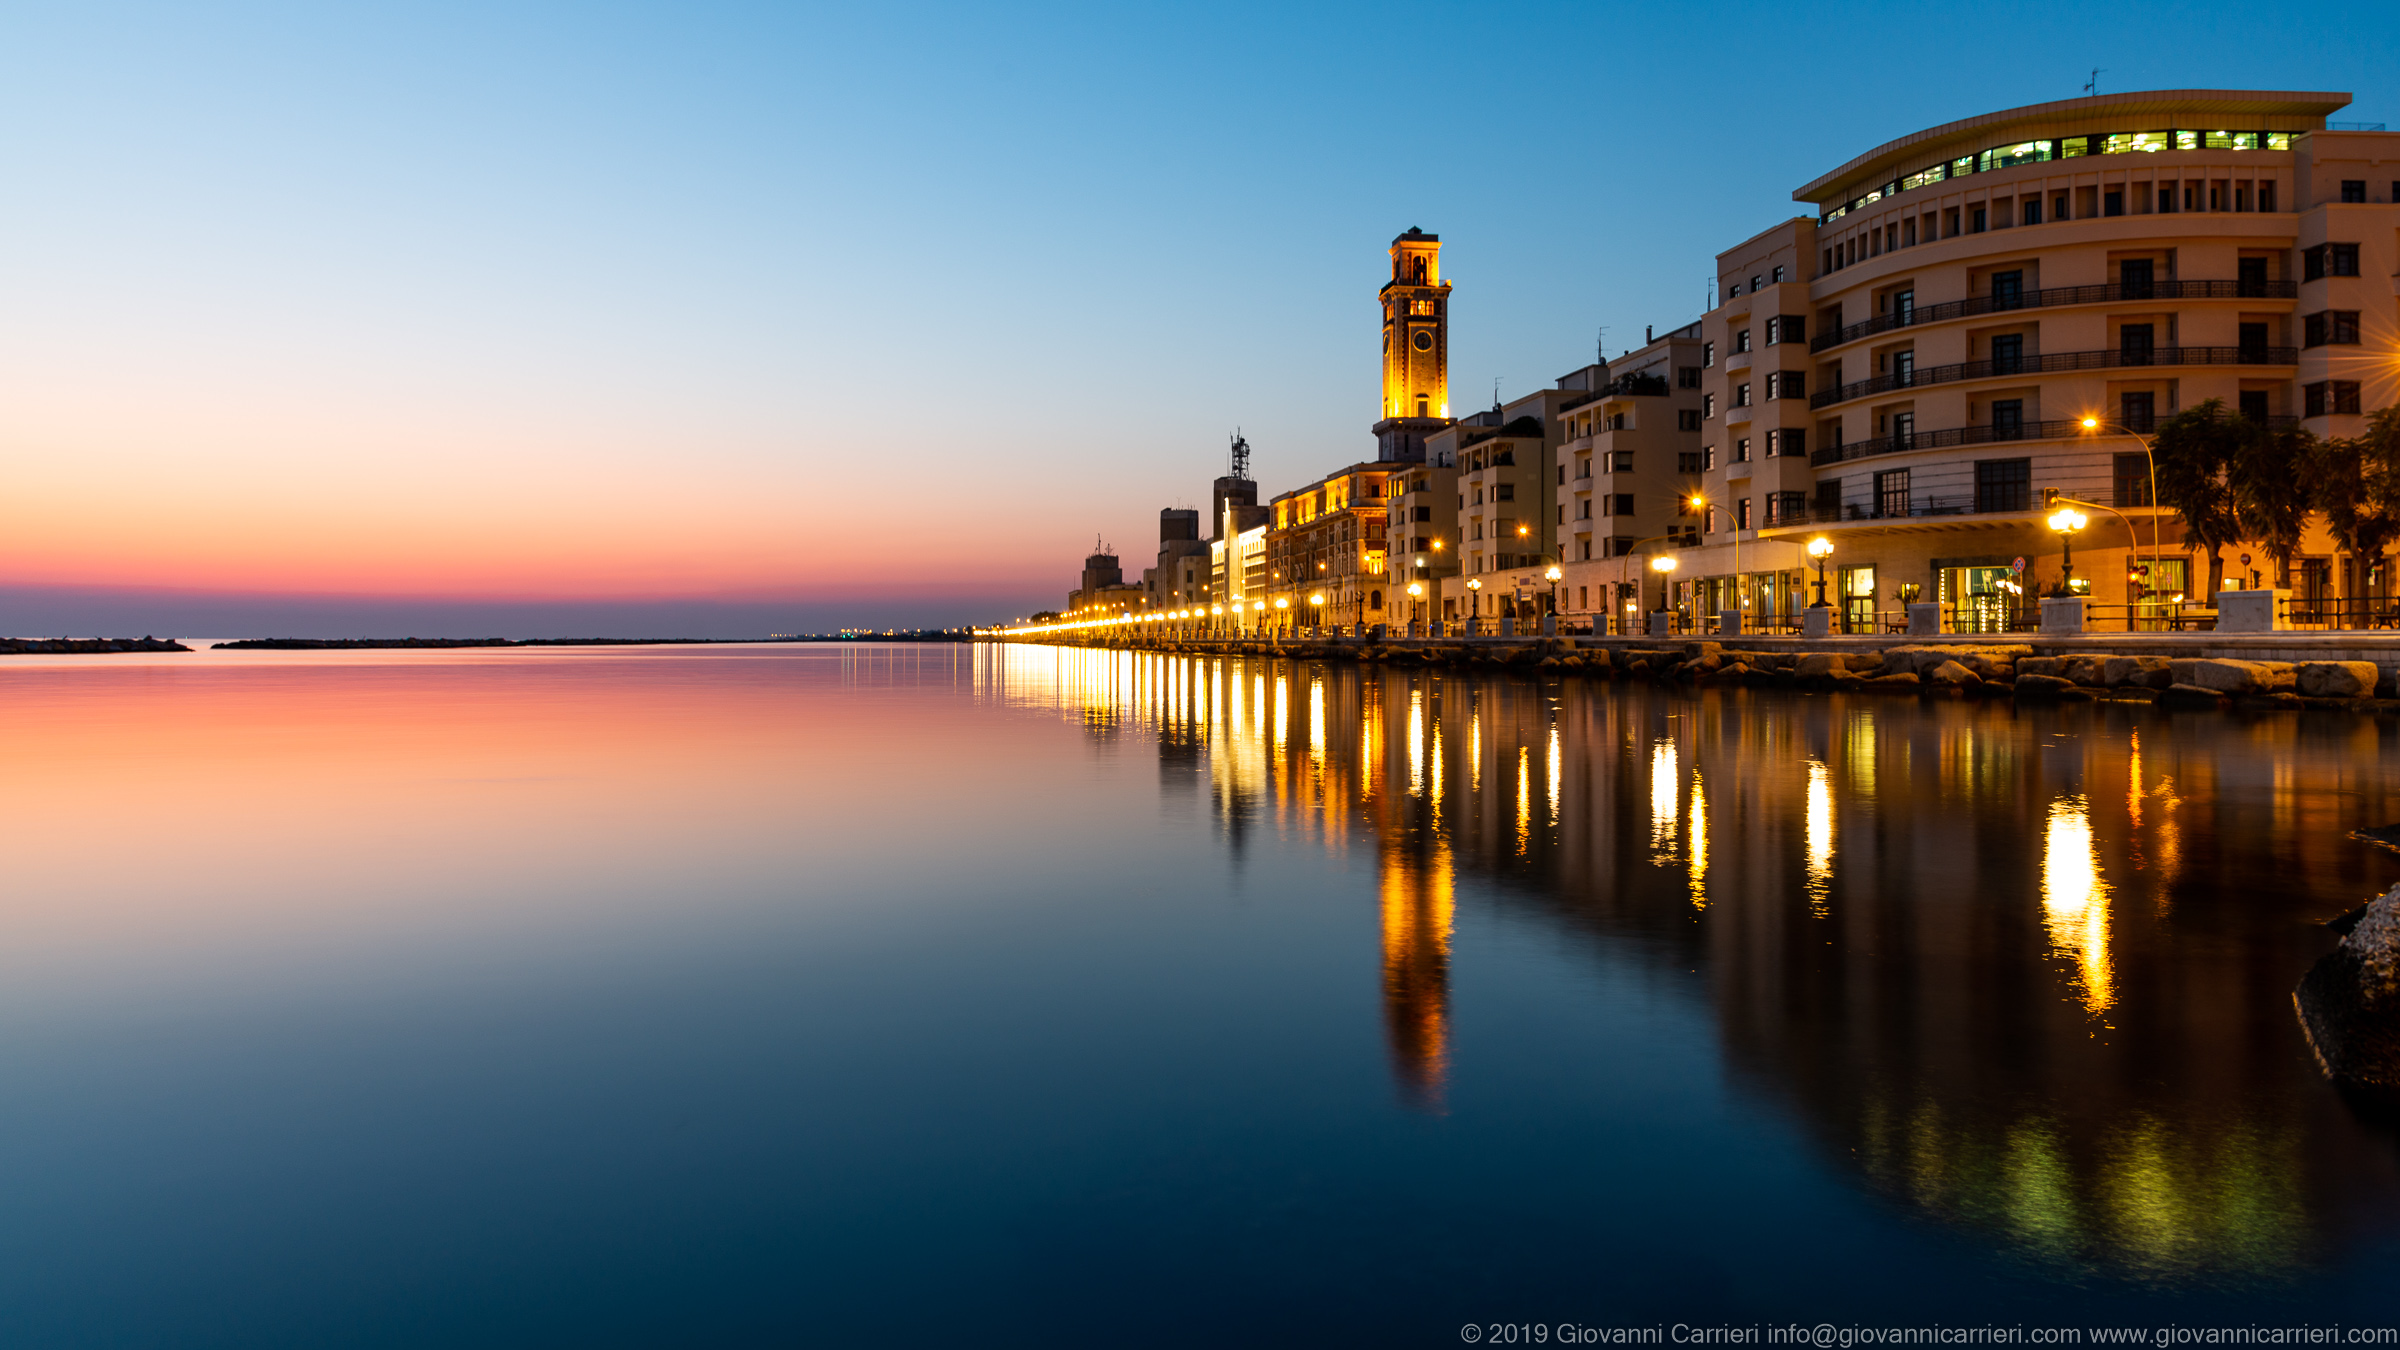 Sunrise on the seafront of Bari